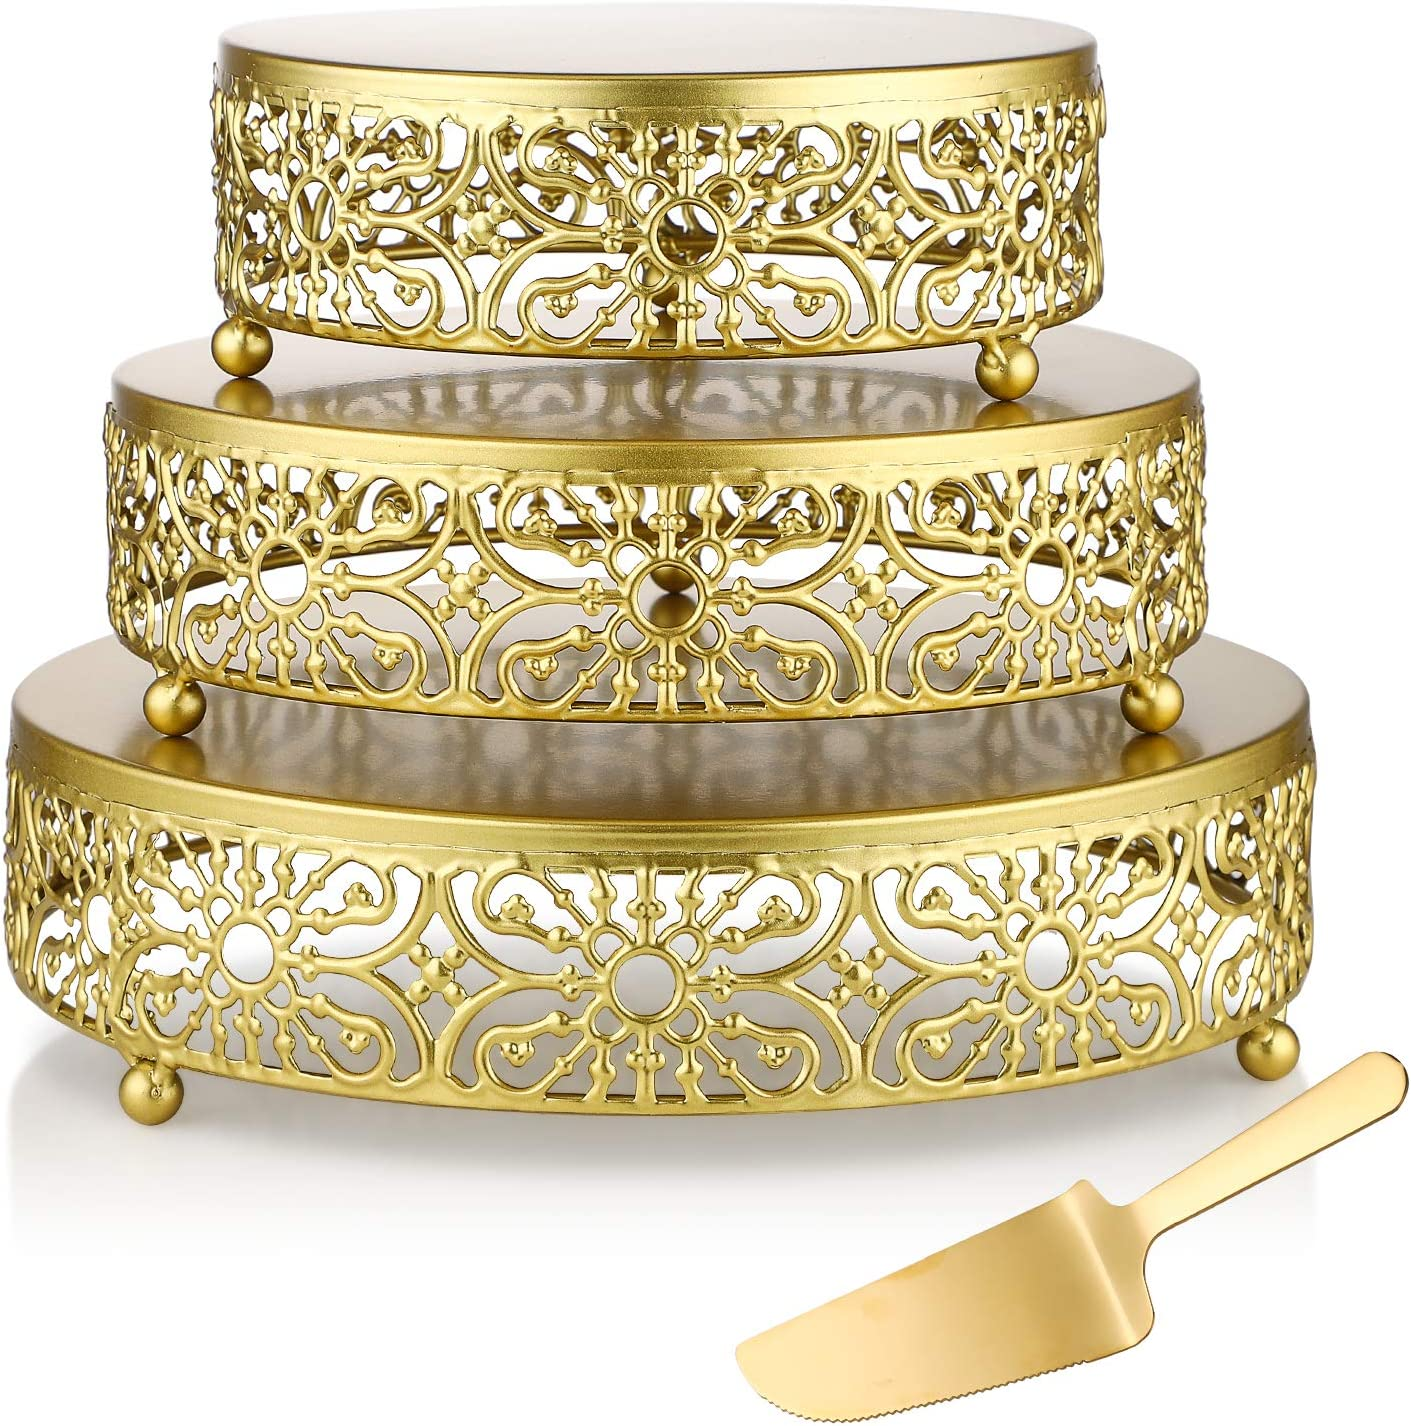 3-Piece Set Cake Stand - 8/10/12 Inch Cupcake Holder Cheese Dessert Display Plate Decor Serving Platter Cupcake TableCraft Stand Tray for Wedding Party Birthday Celebration Bases (Gold)